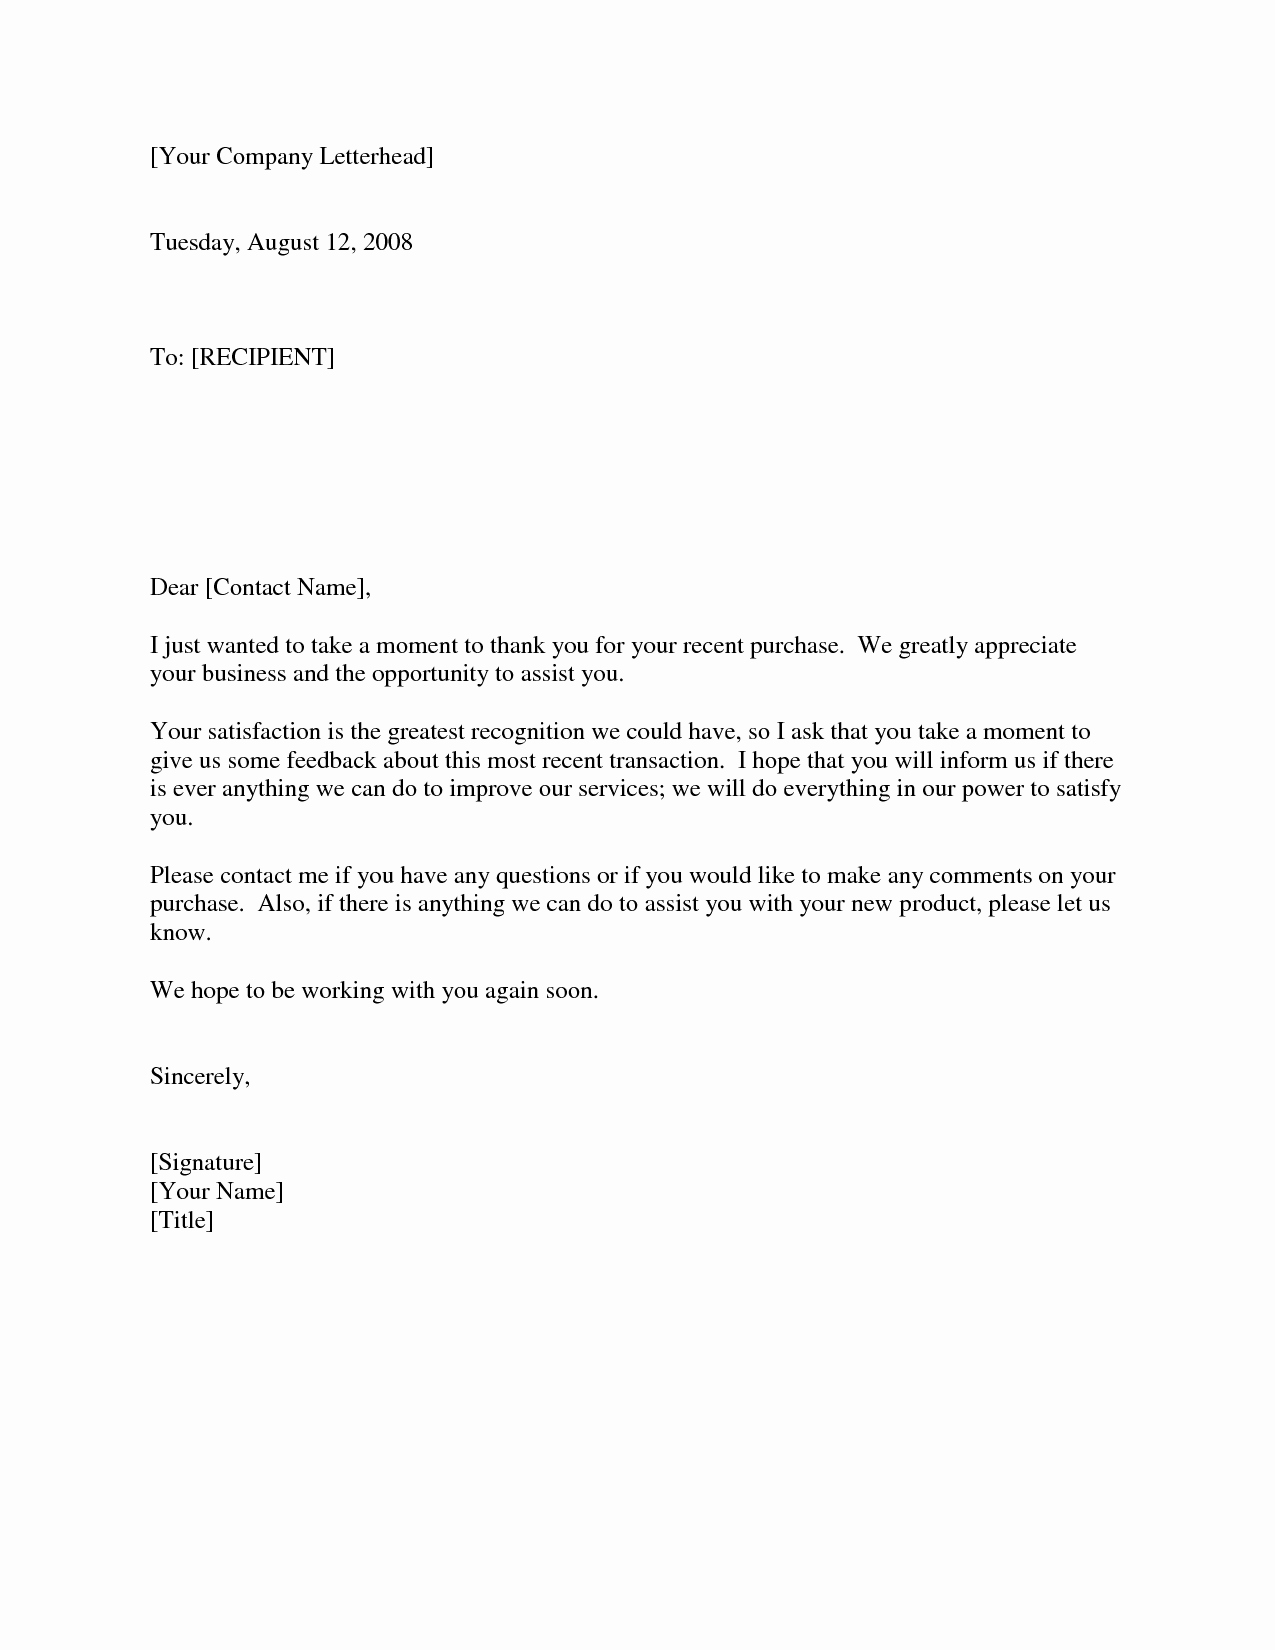 Thank You Letter Business Template Elegant Business Thank You Letter to Client